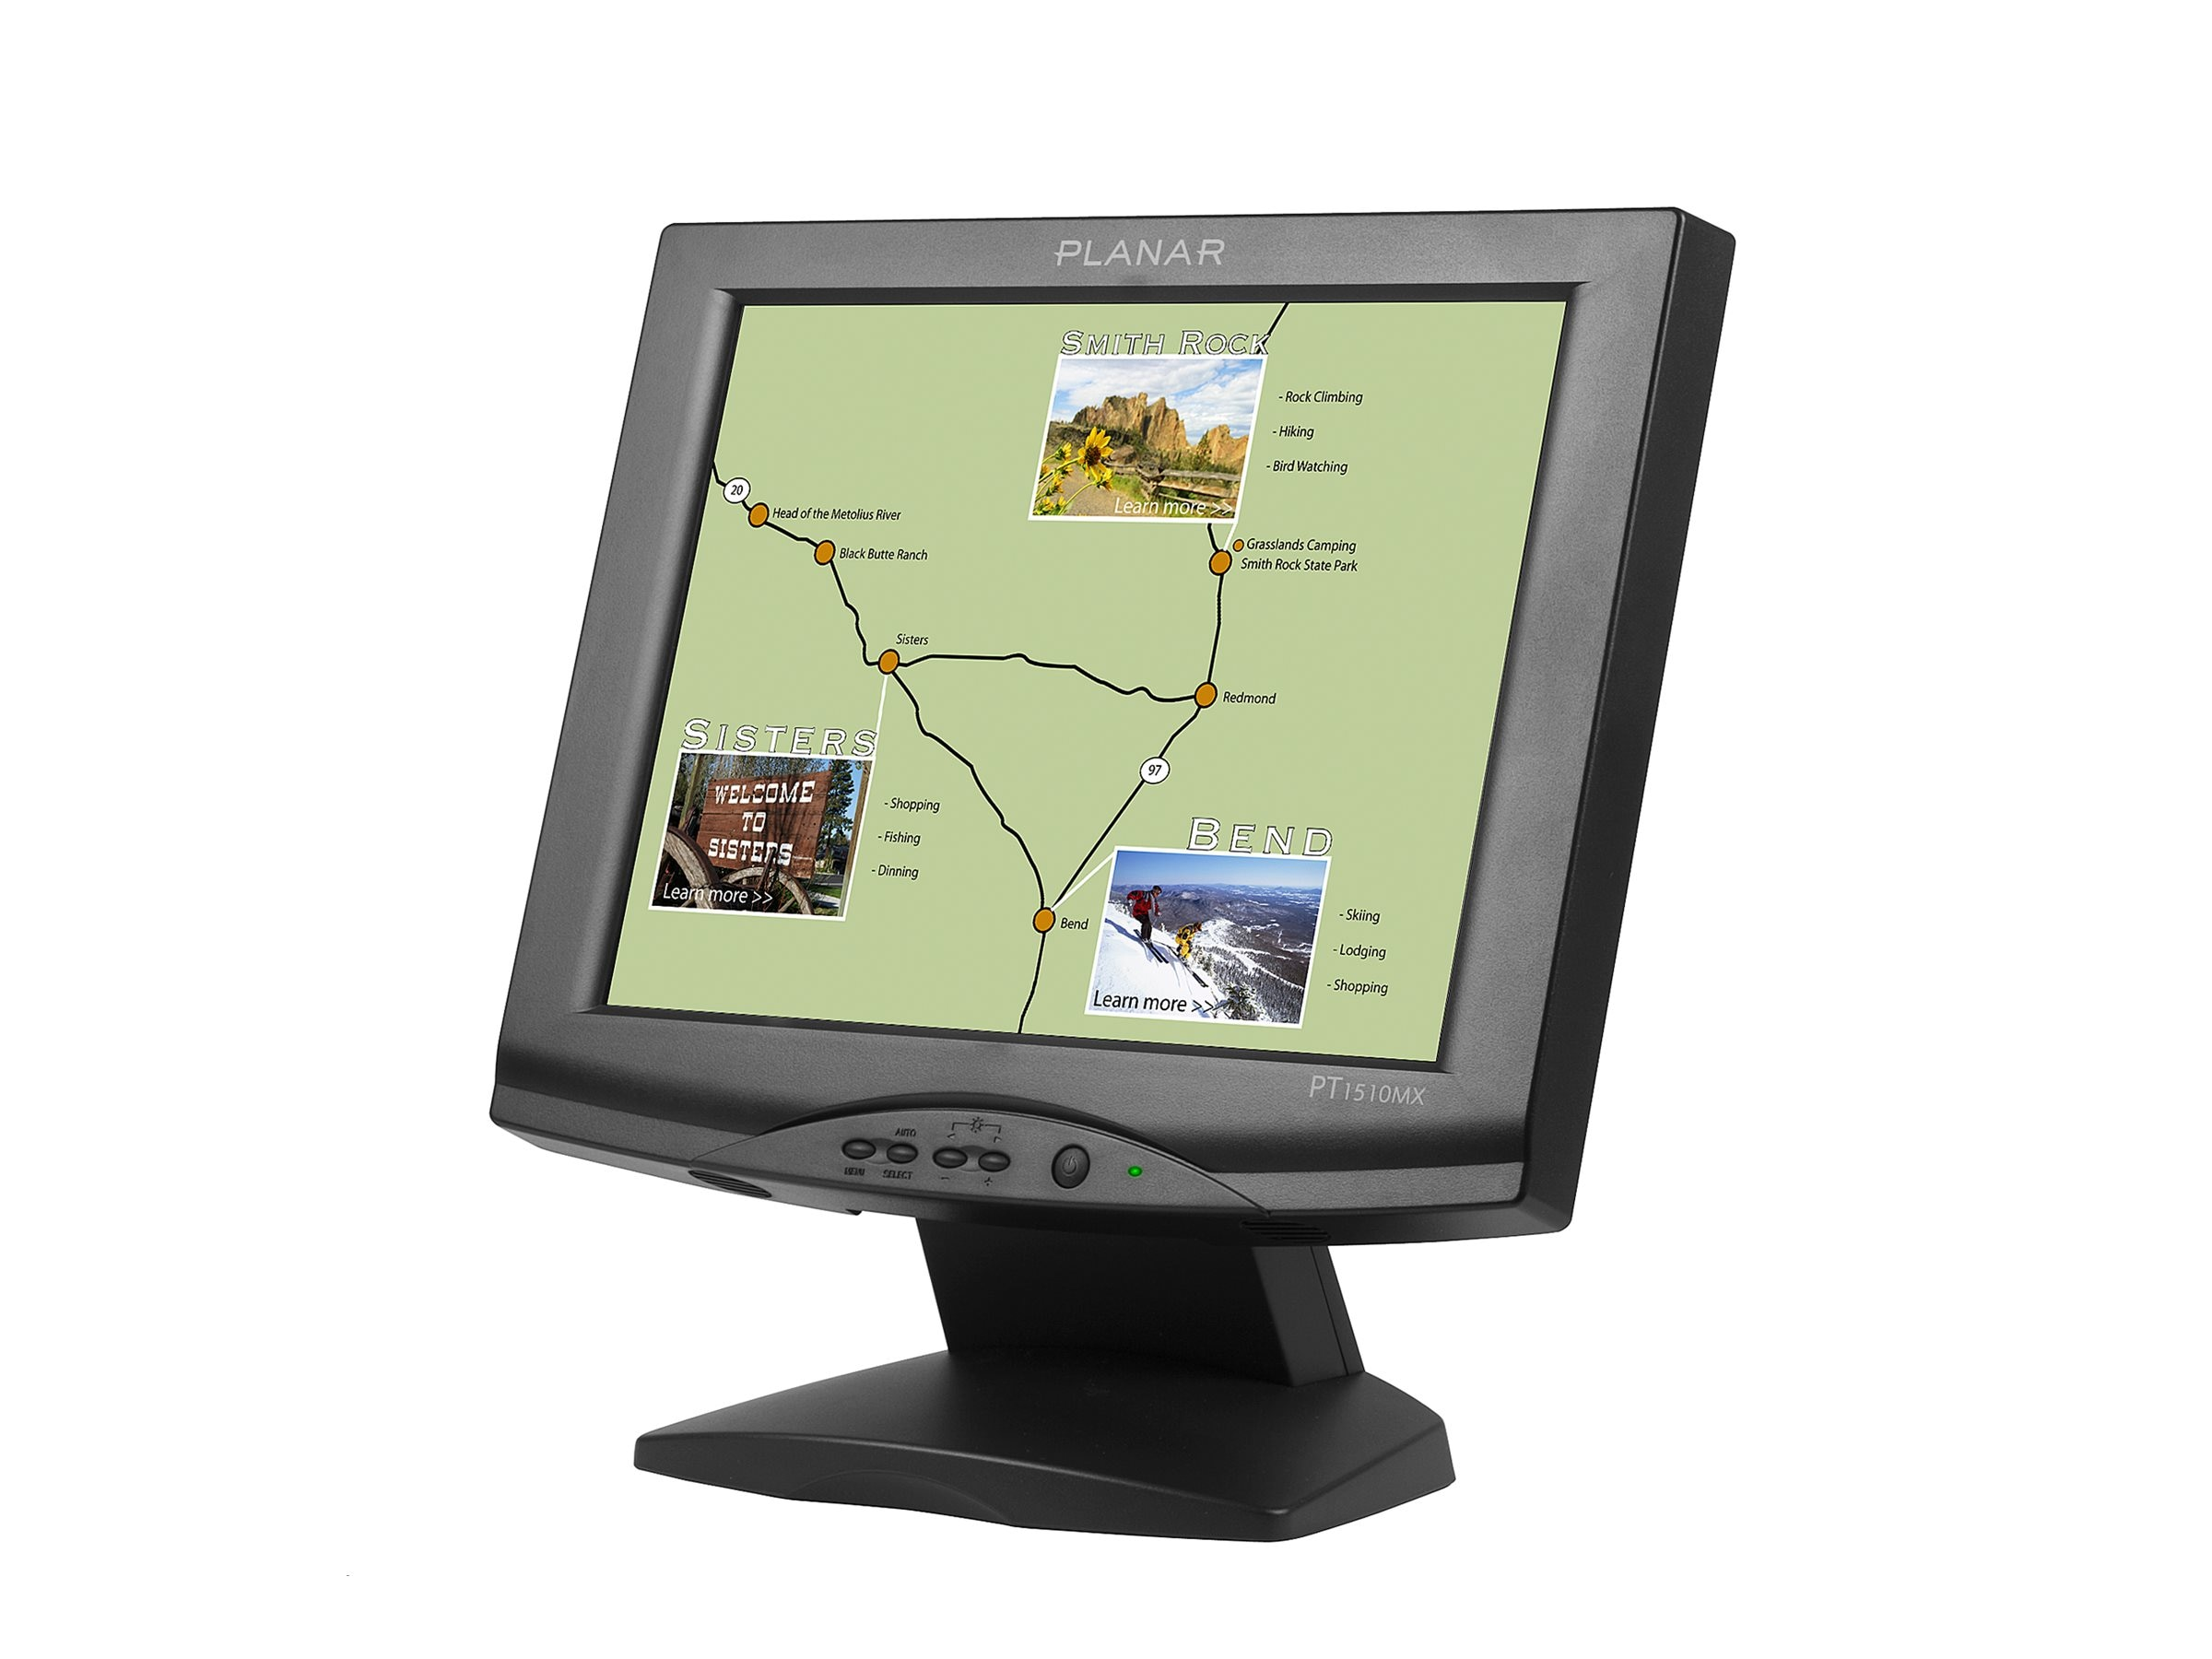 Planar 15 PT1510MX LCD Touchscreen Monitor with Speakers, Black